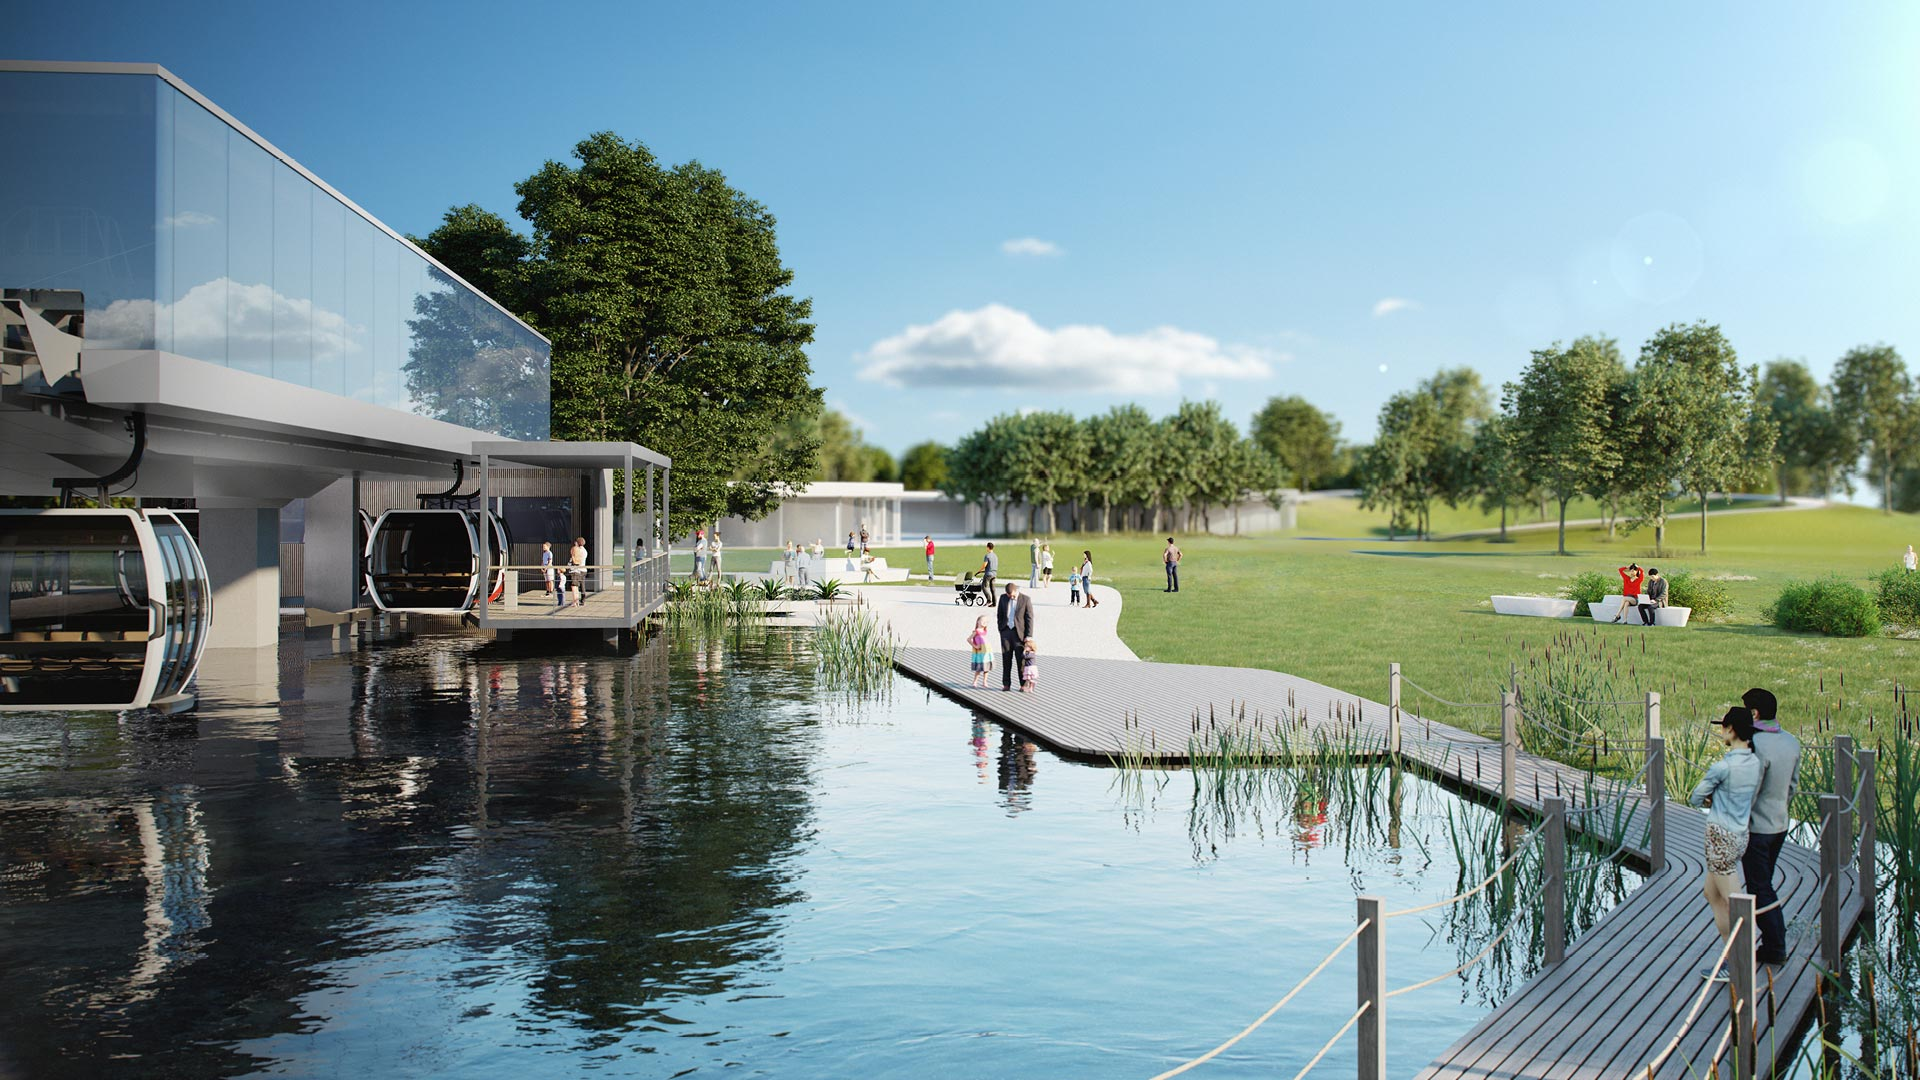 Doppelmayr cable car station above lake at Floriade 2022 in Almere